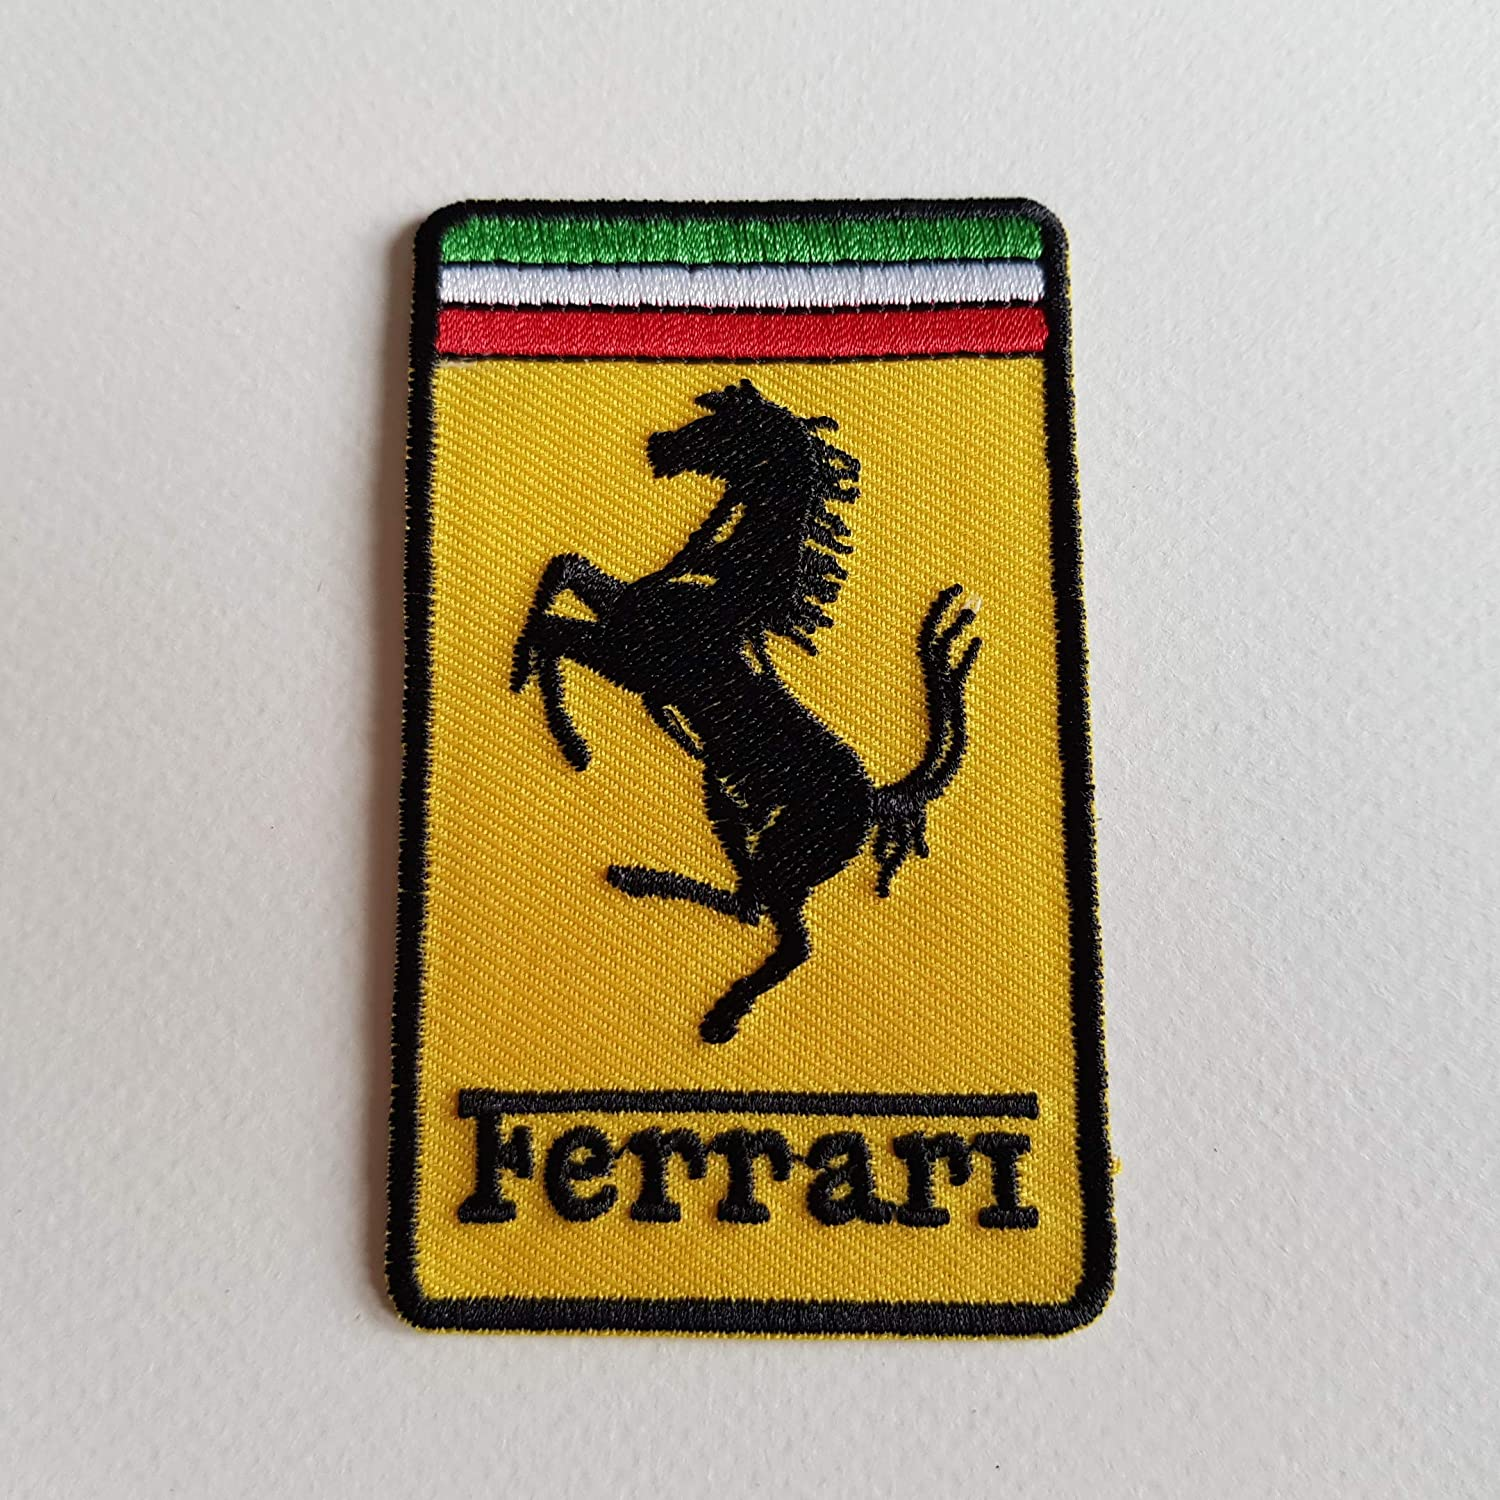 BLUE HAWAI ECUSSON Patches AUFNAHER Toppa THERMOCOLLANT - Ferrari 5, 5 * 9 CM